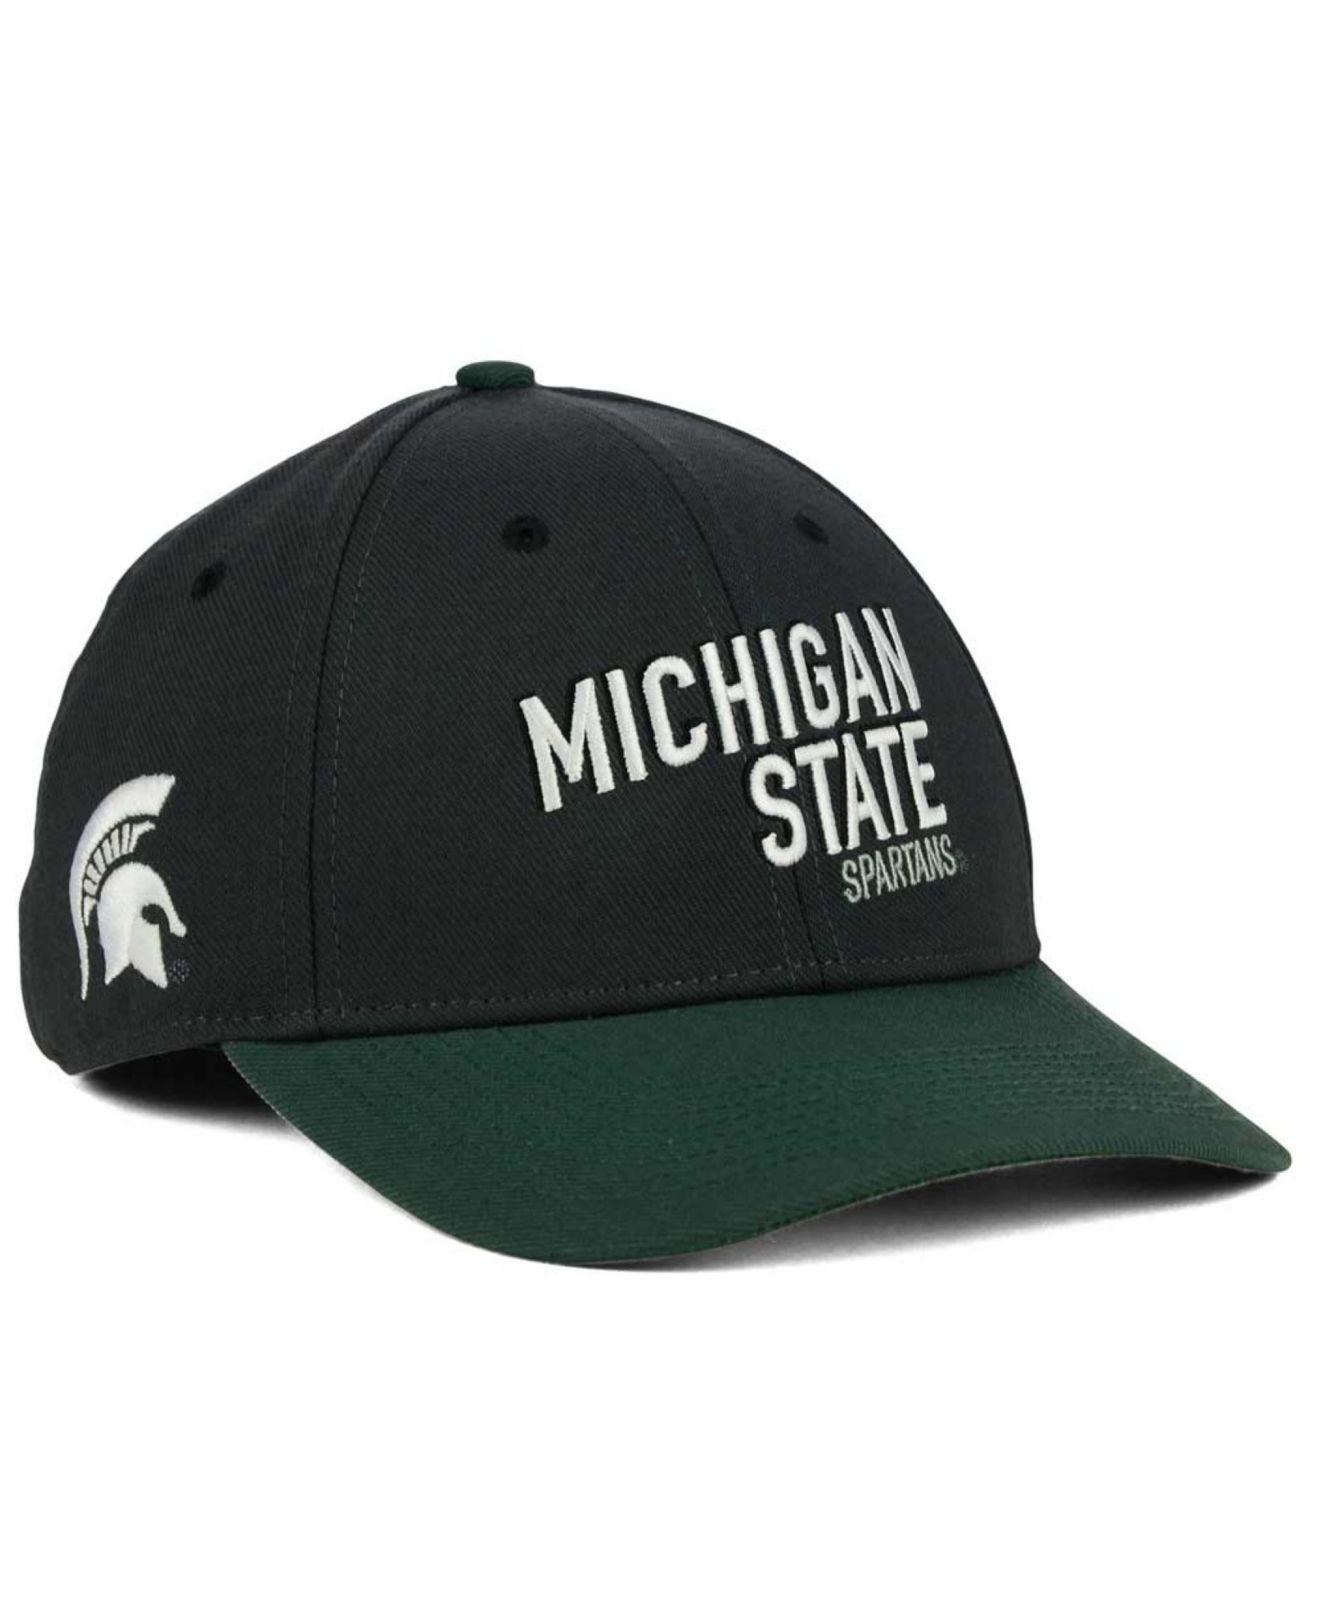 check out 7a085 90277 ... coupon for lyst nike michigan state spartans l91 swooshflex cap in gray  for men 2d1ba e8c48